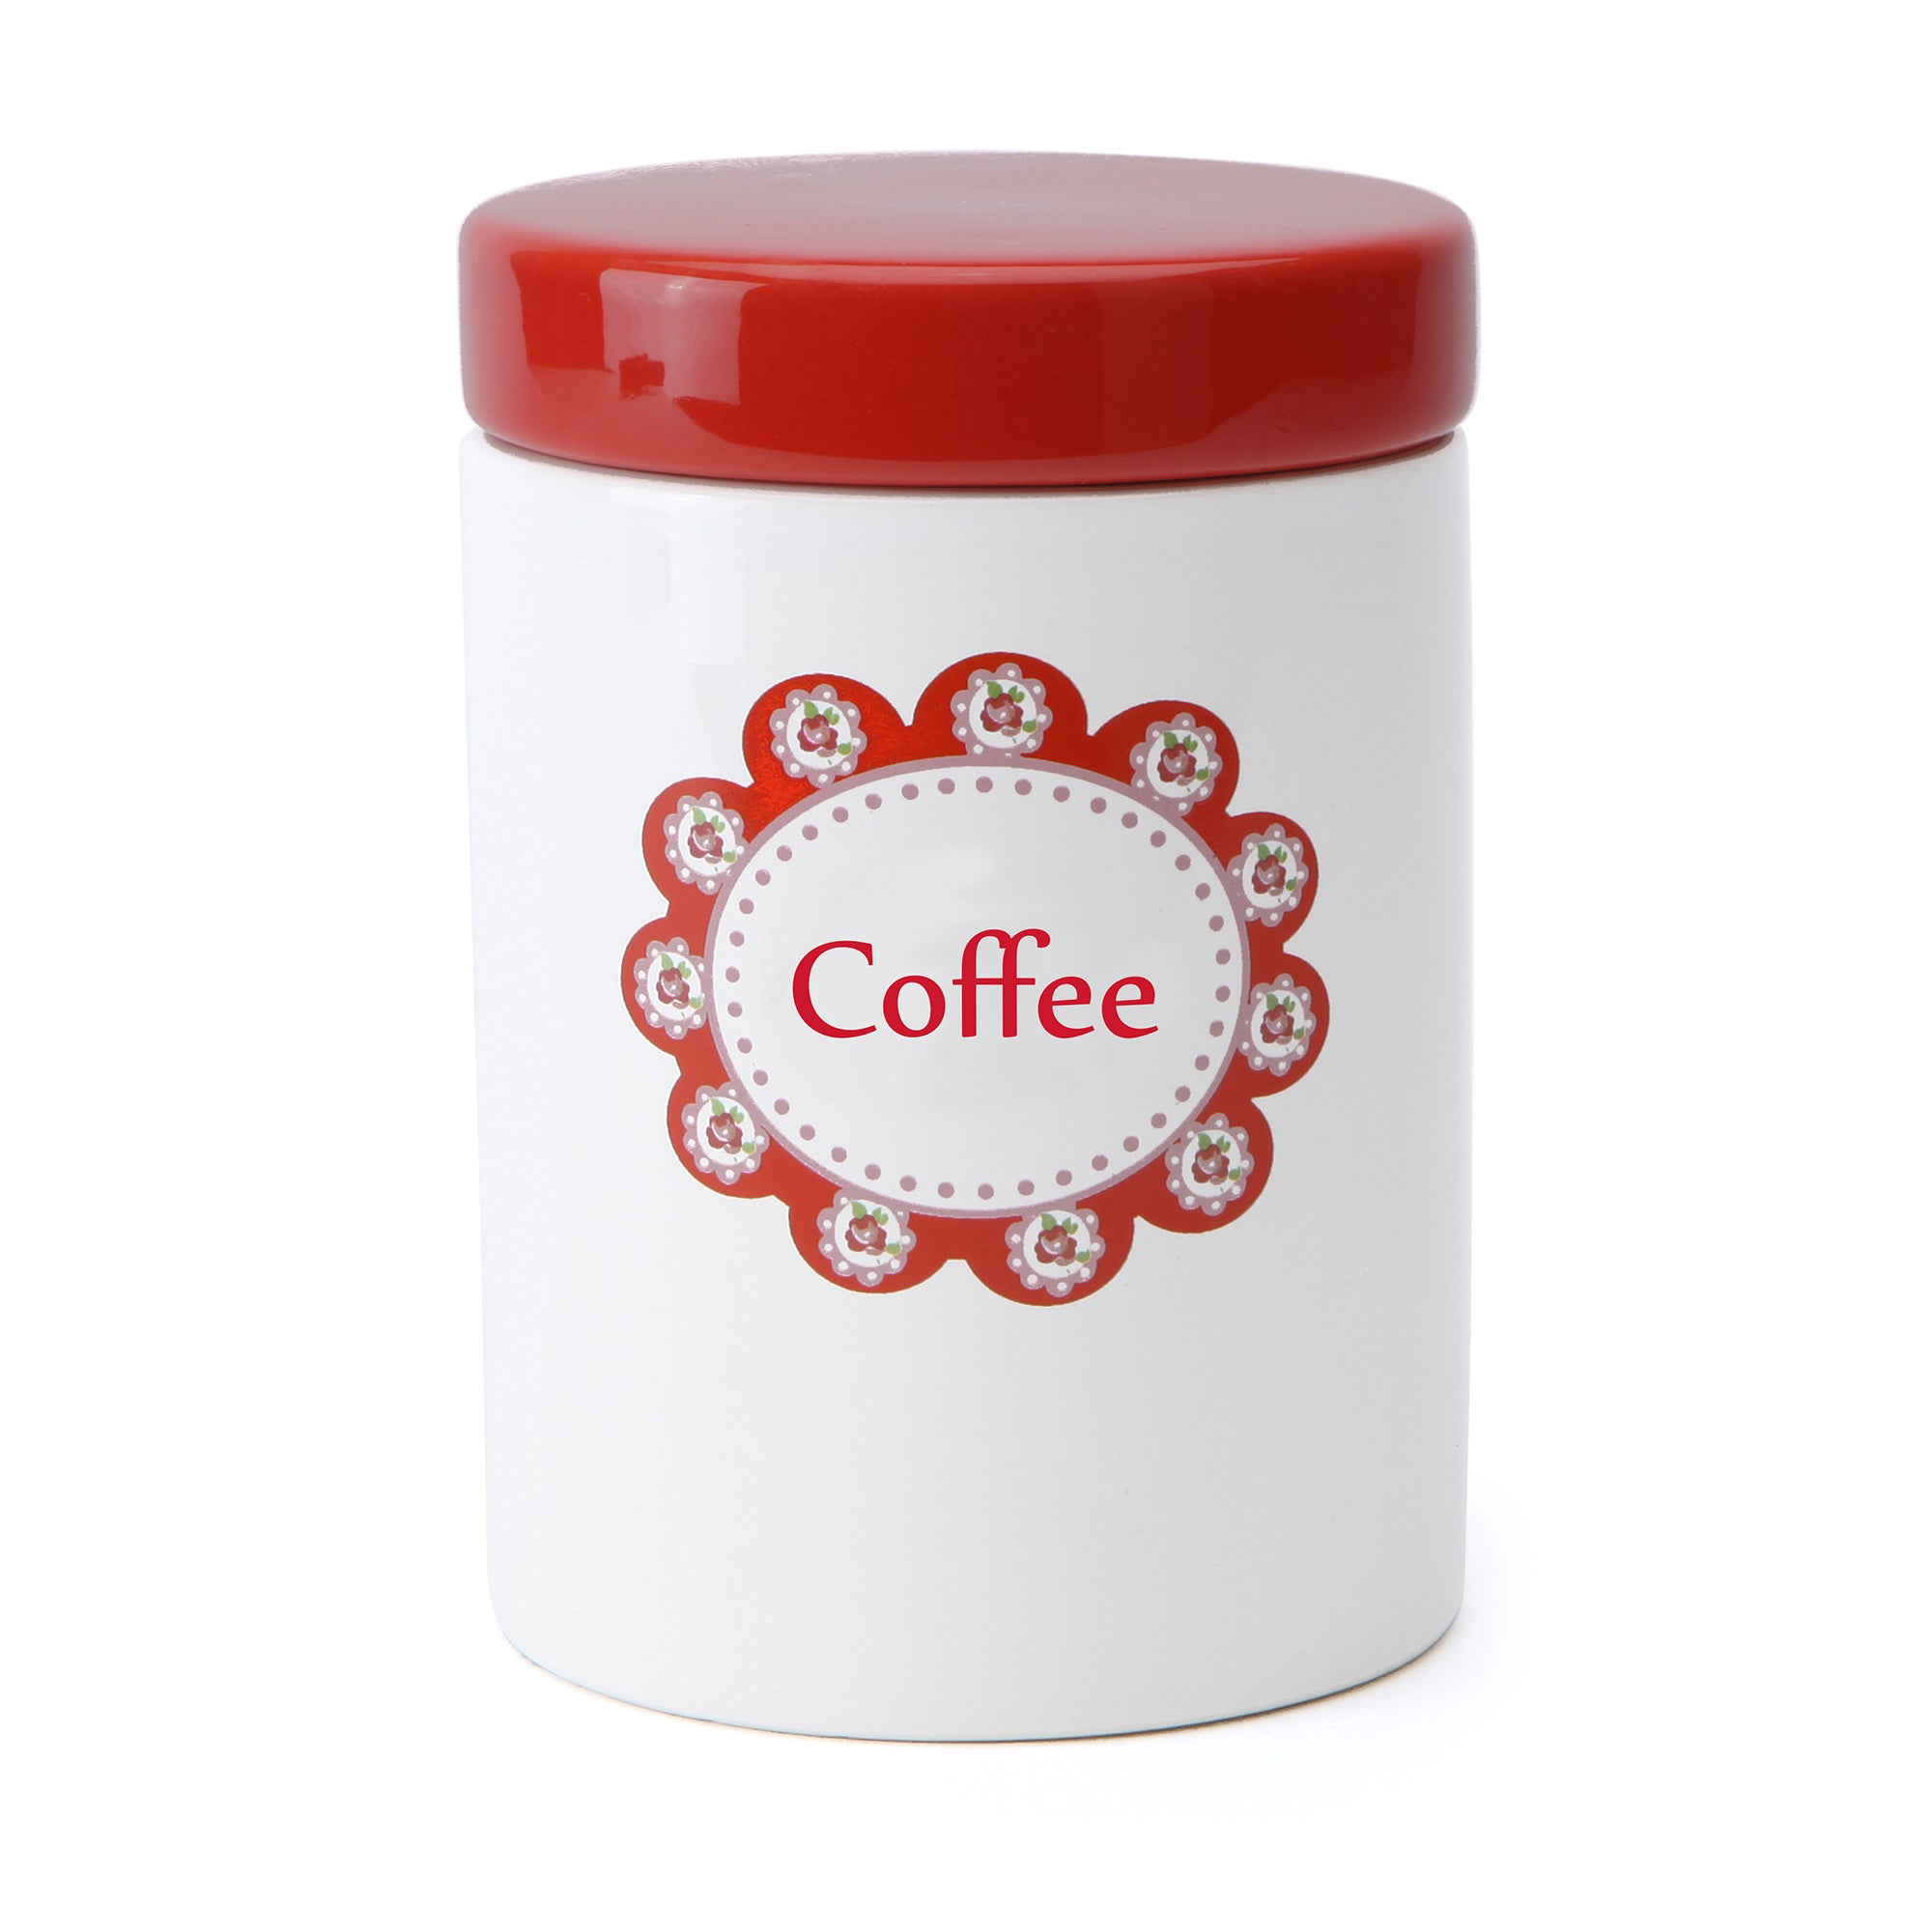 Rose and Ellis Allexton Collection Coffee Canister